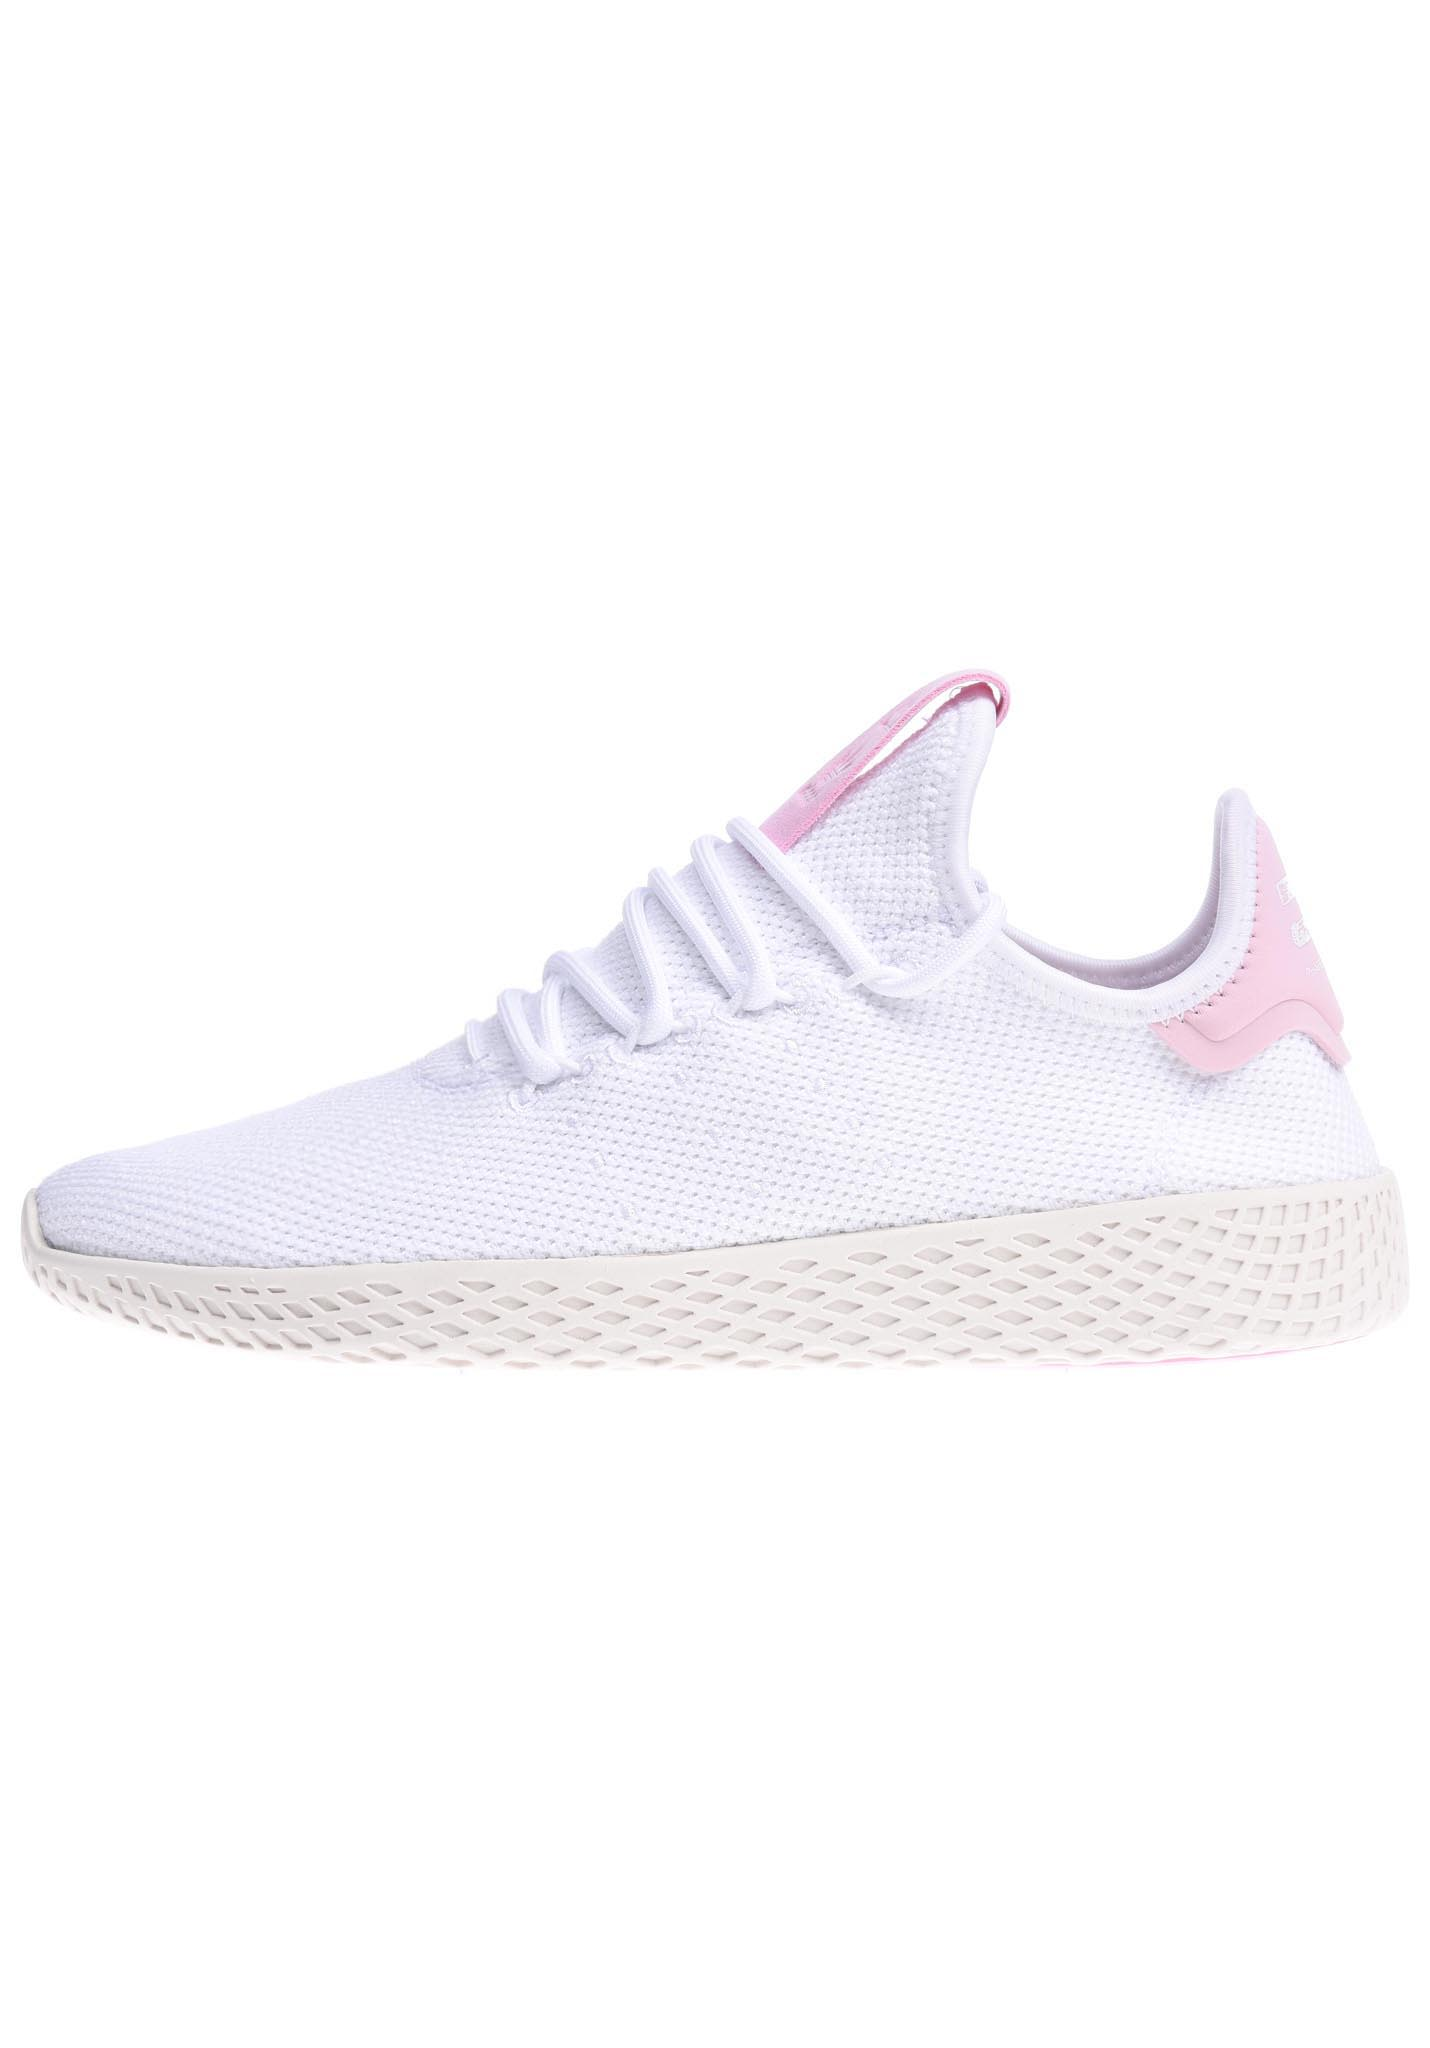 25c59468977 ADIDAS ORIGINALS Pharrell Williams Tennis Hu - Sneakers voor Dames - Wit -  Planet Sports